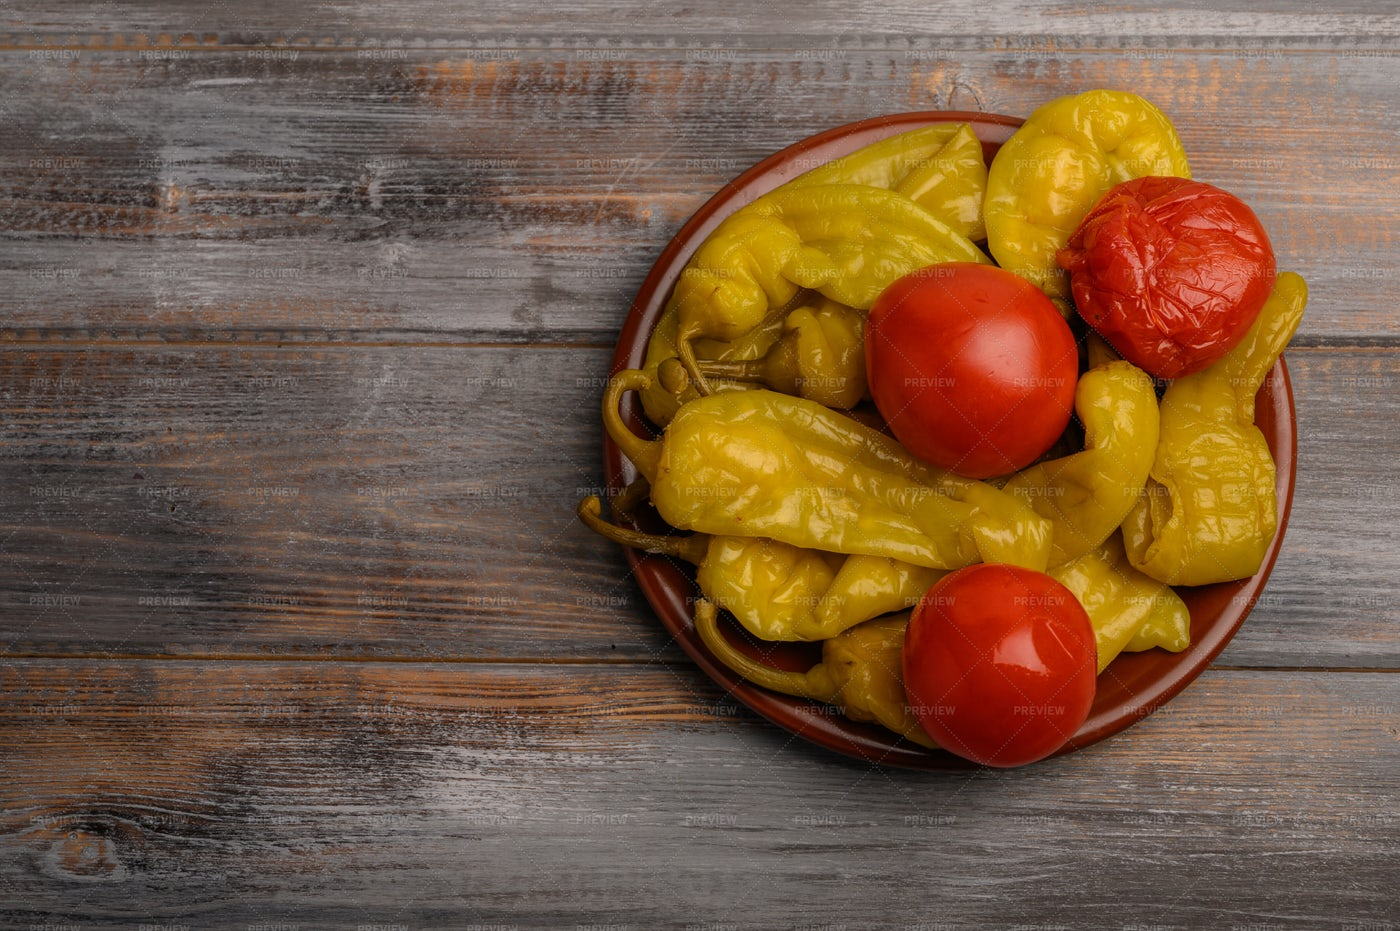 Pickled Peppers And Tomatoes: Stock Photos